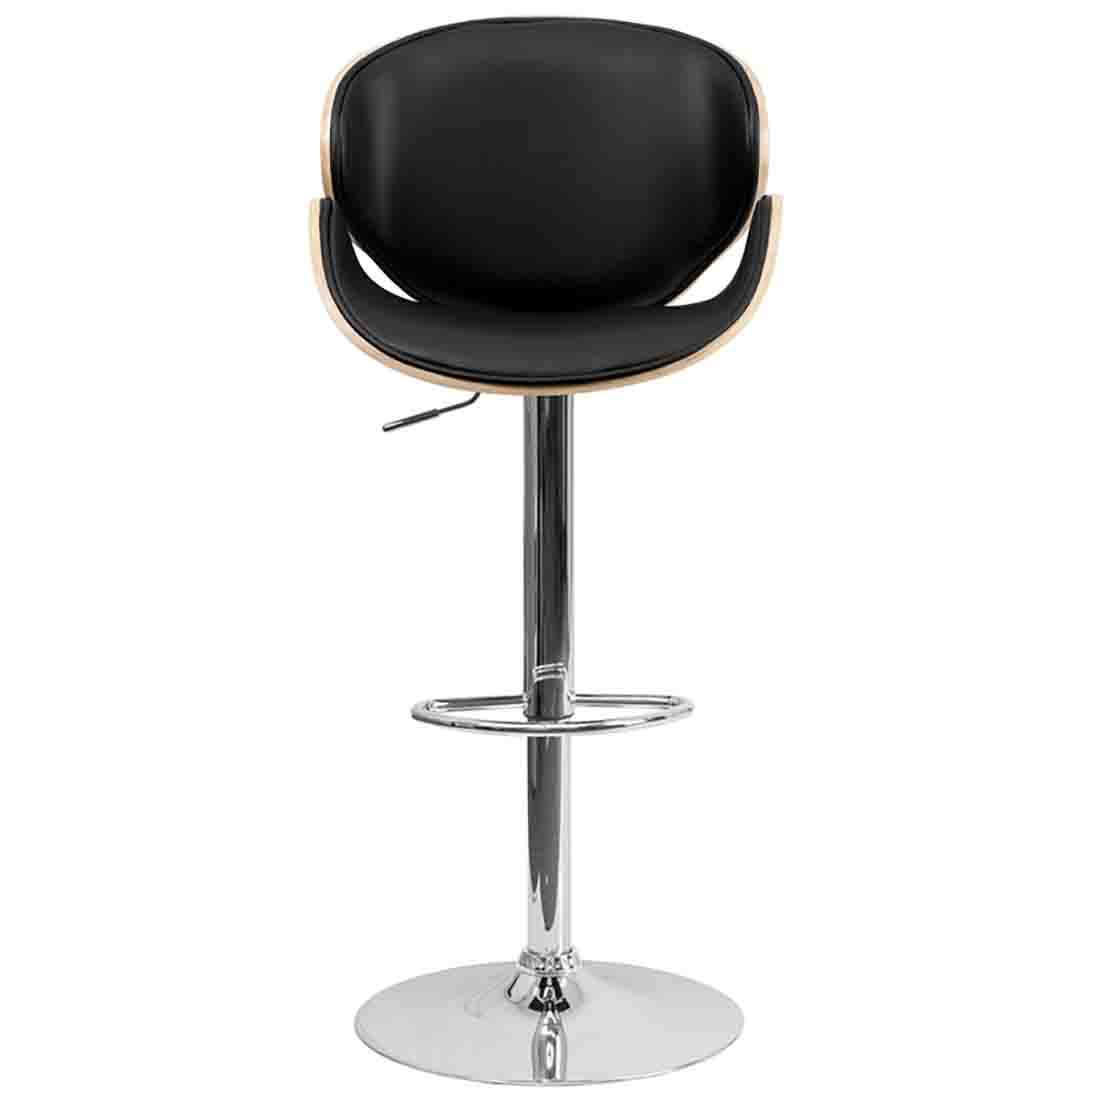 Adjustable Bar Stool With Back Adjustable Industrial  : beech bentwood adjustable height bar stool with curved black vinyl seat and back from sherlockdesigner.com size 1100 x 1100 jpeg 24kB